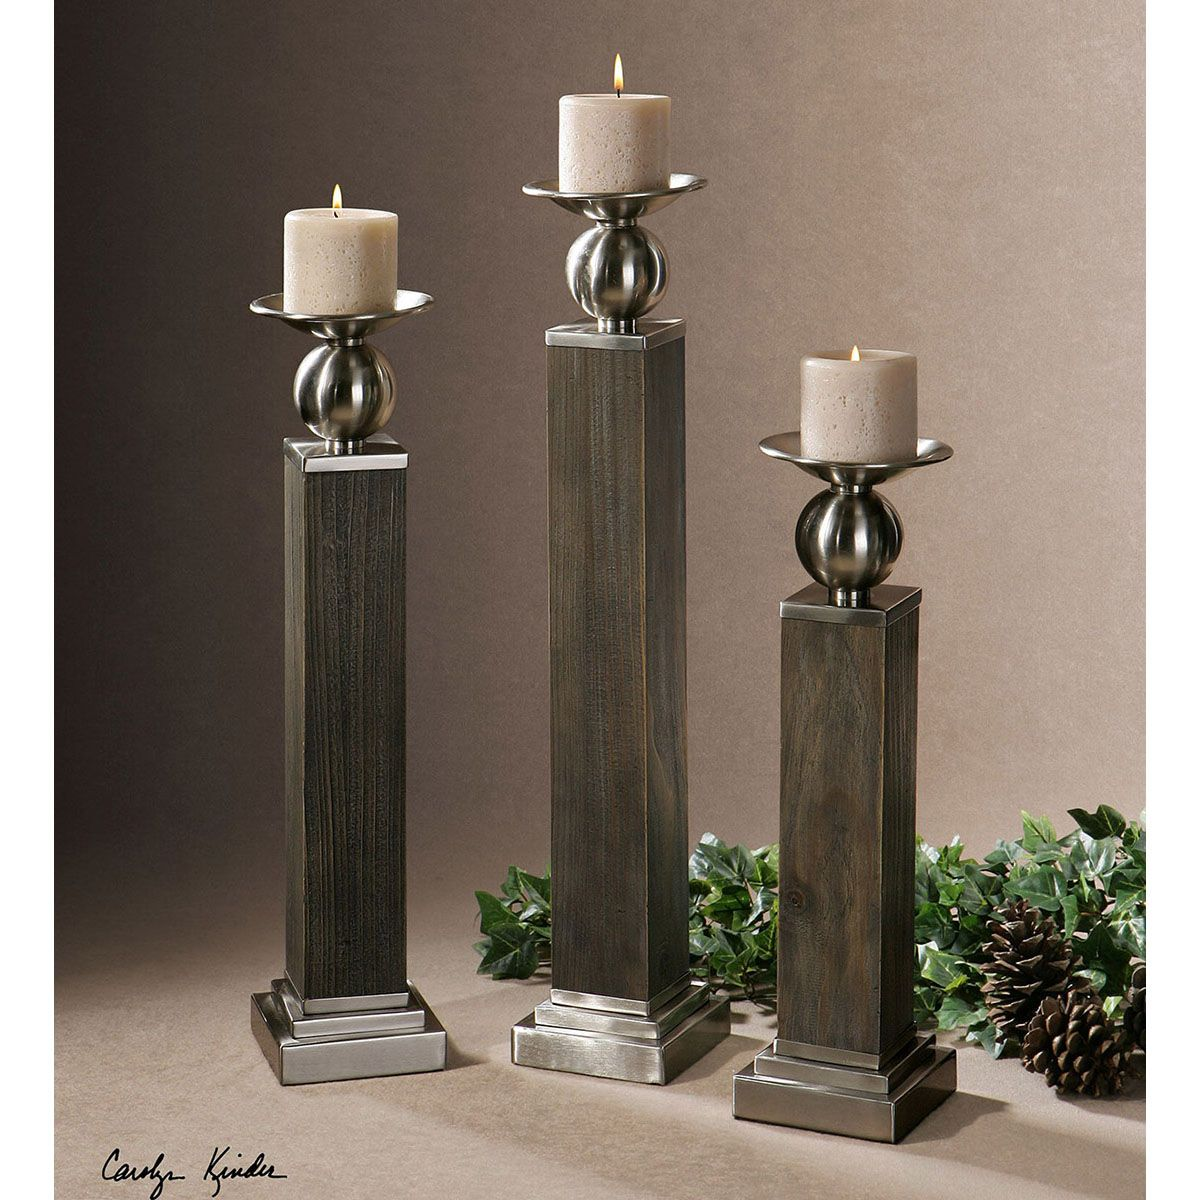 Hestia Candle Holders (Set of 3)  -  19832